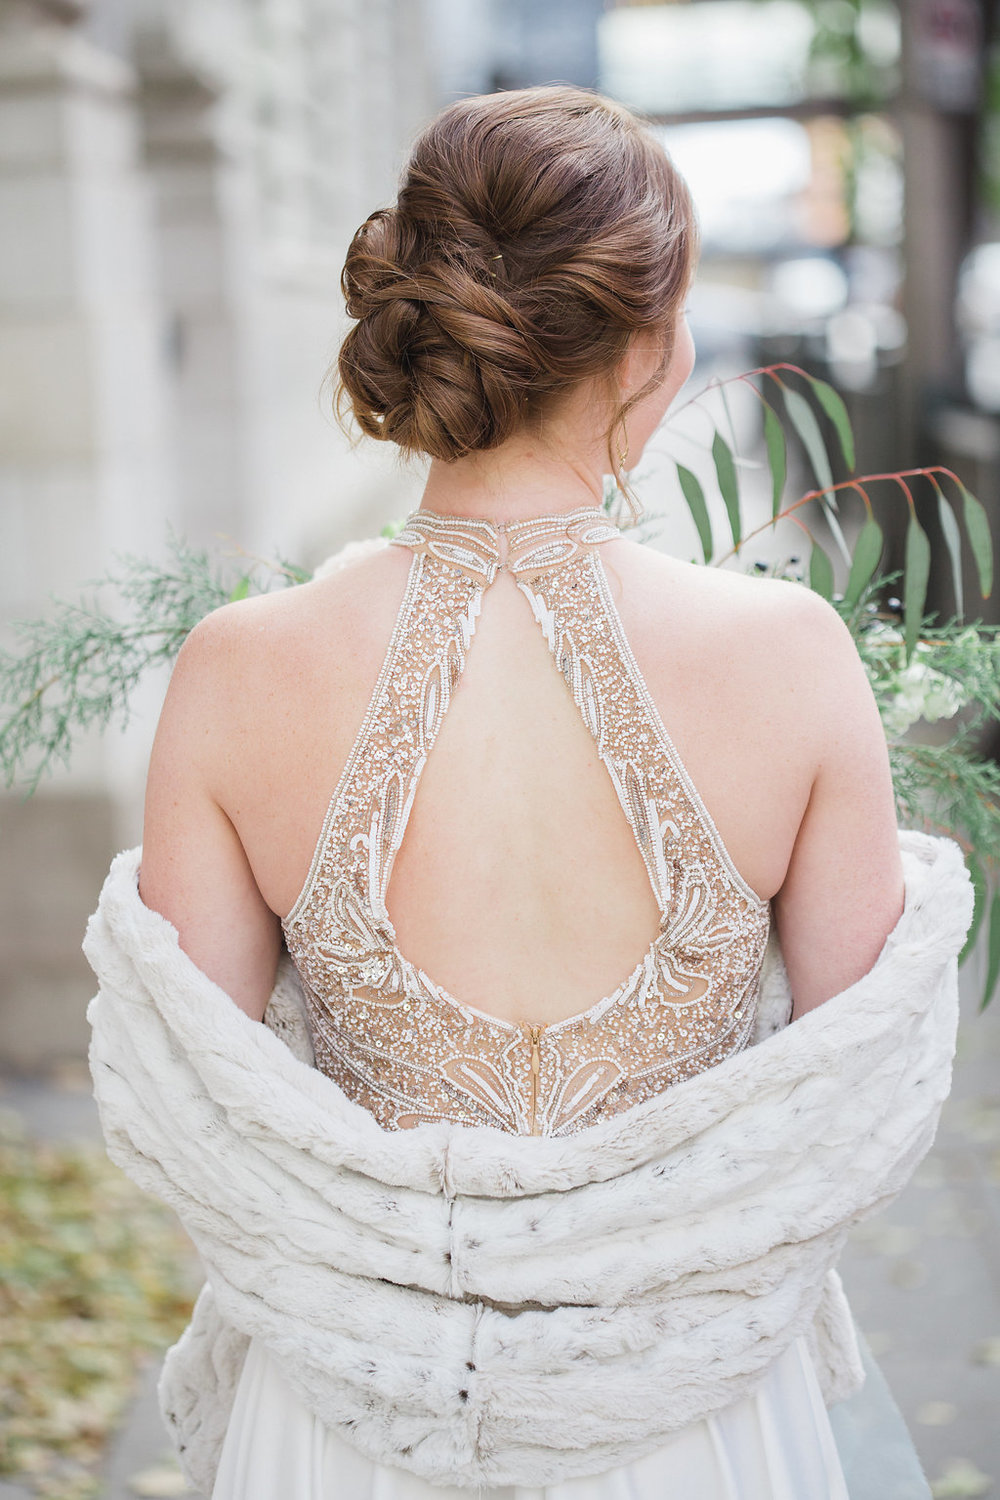 Winter Wedding Inspo - Featured onRocky Mountain Bride